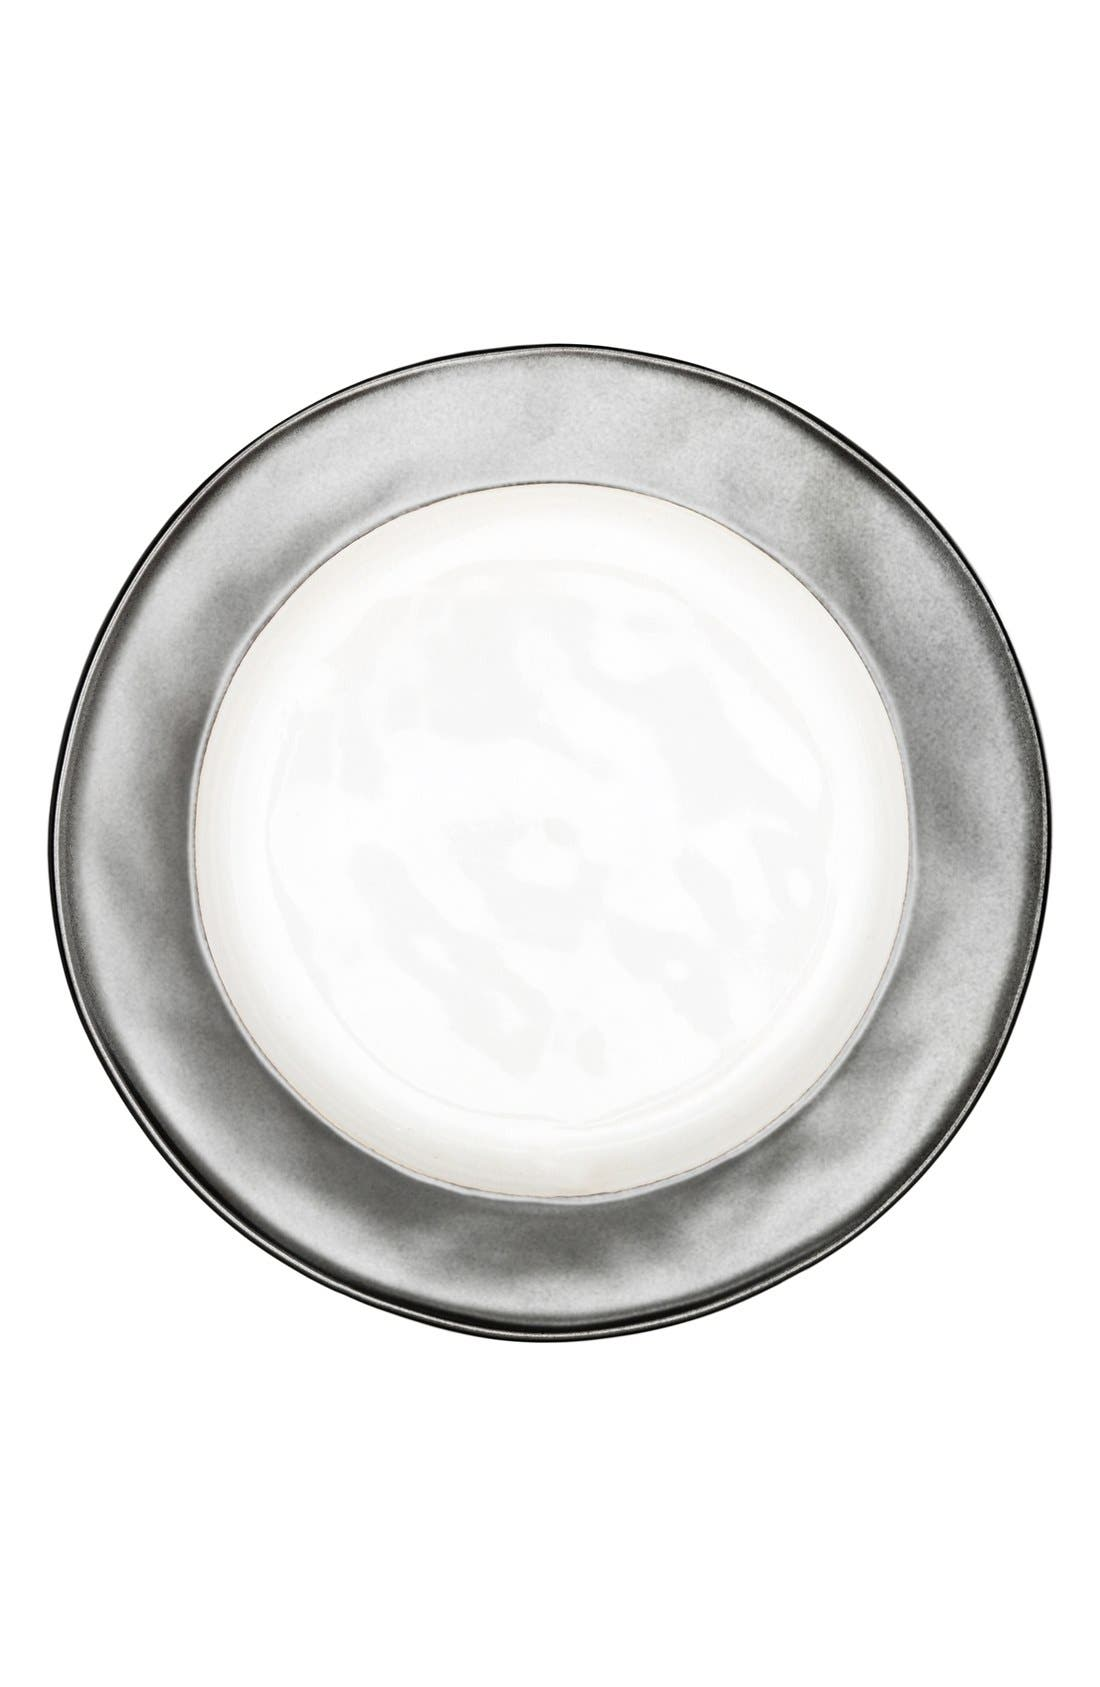 'Emerson' Ceramic Dessert Plate,                         Main,                         color, Pewter/ White